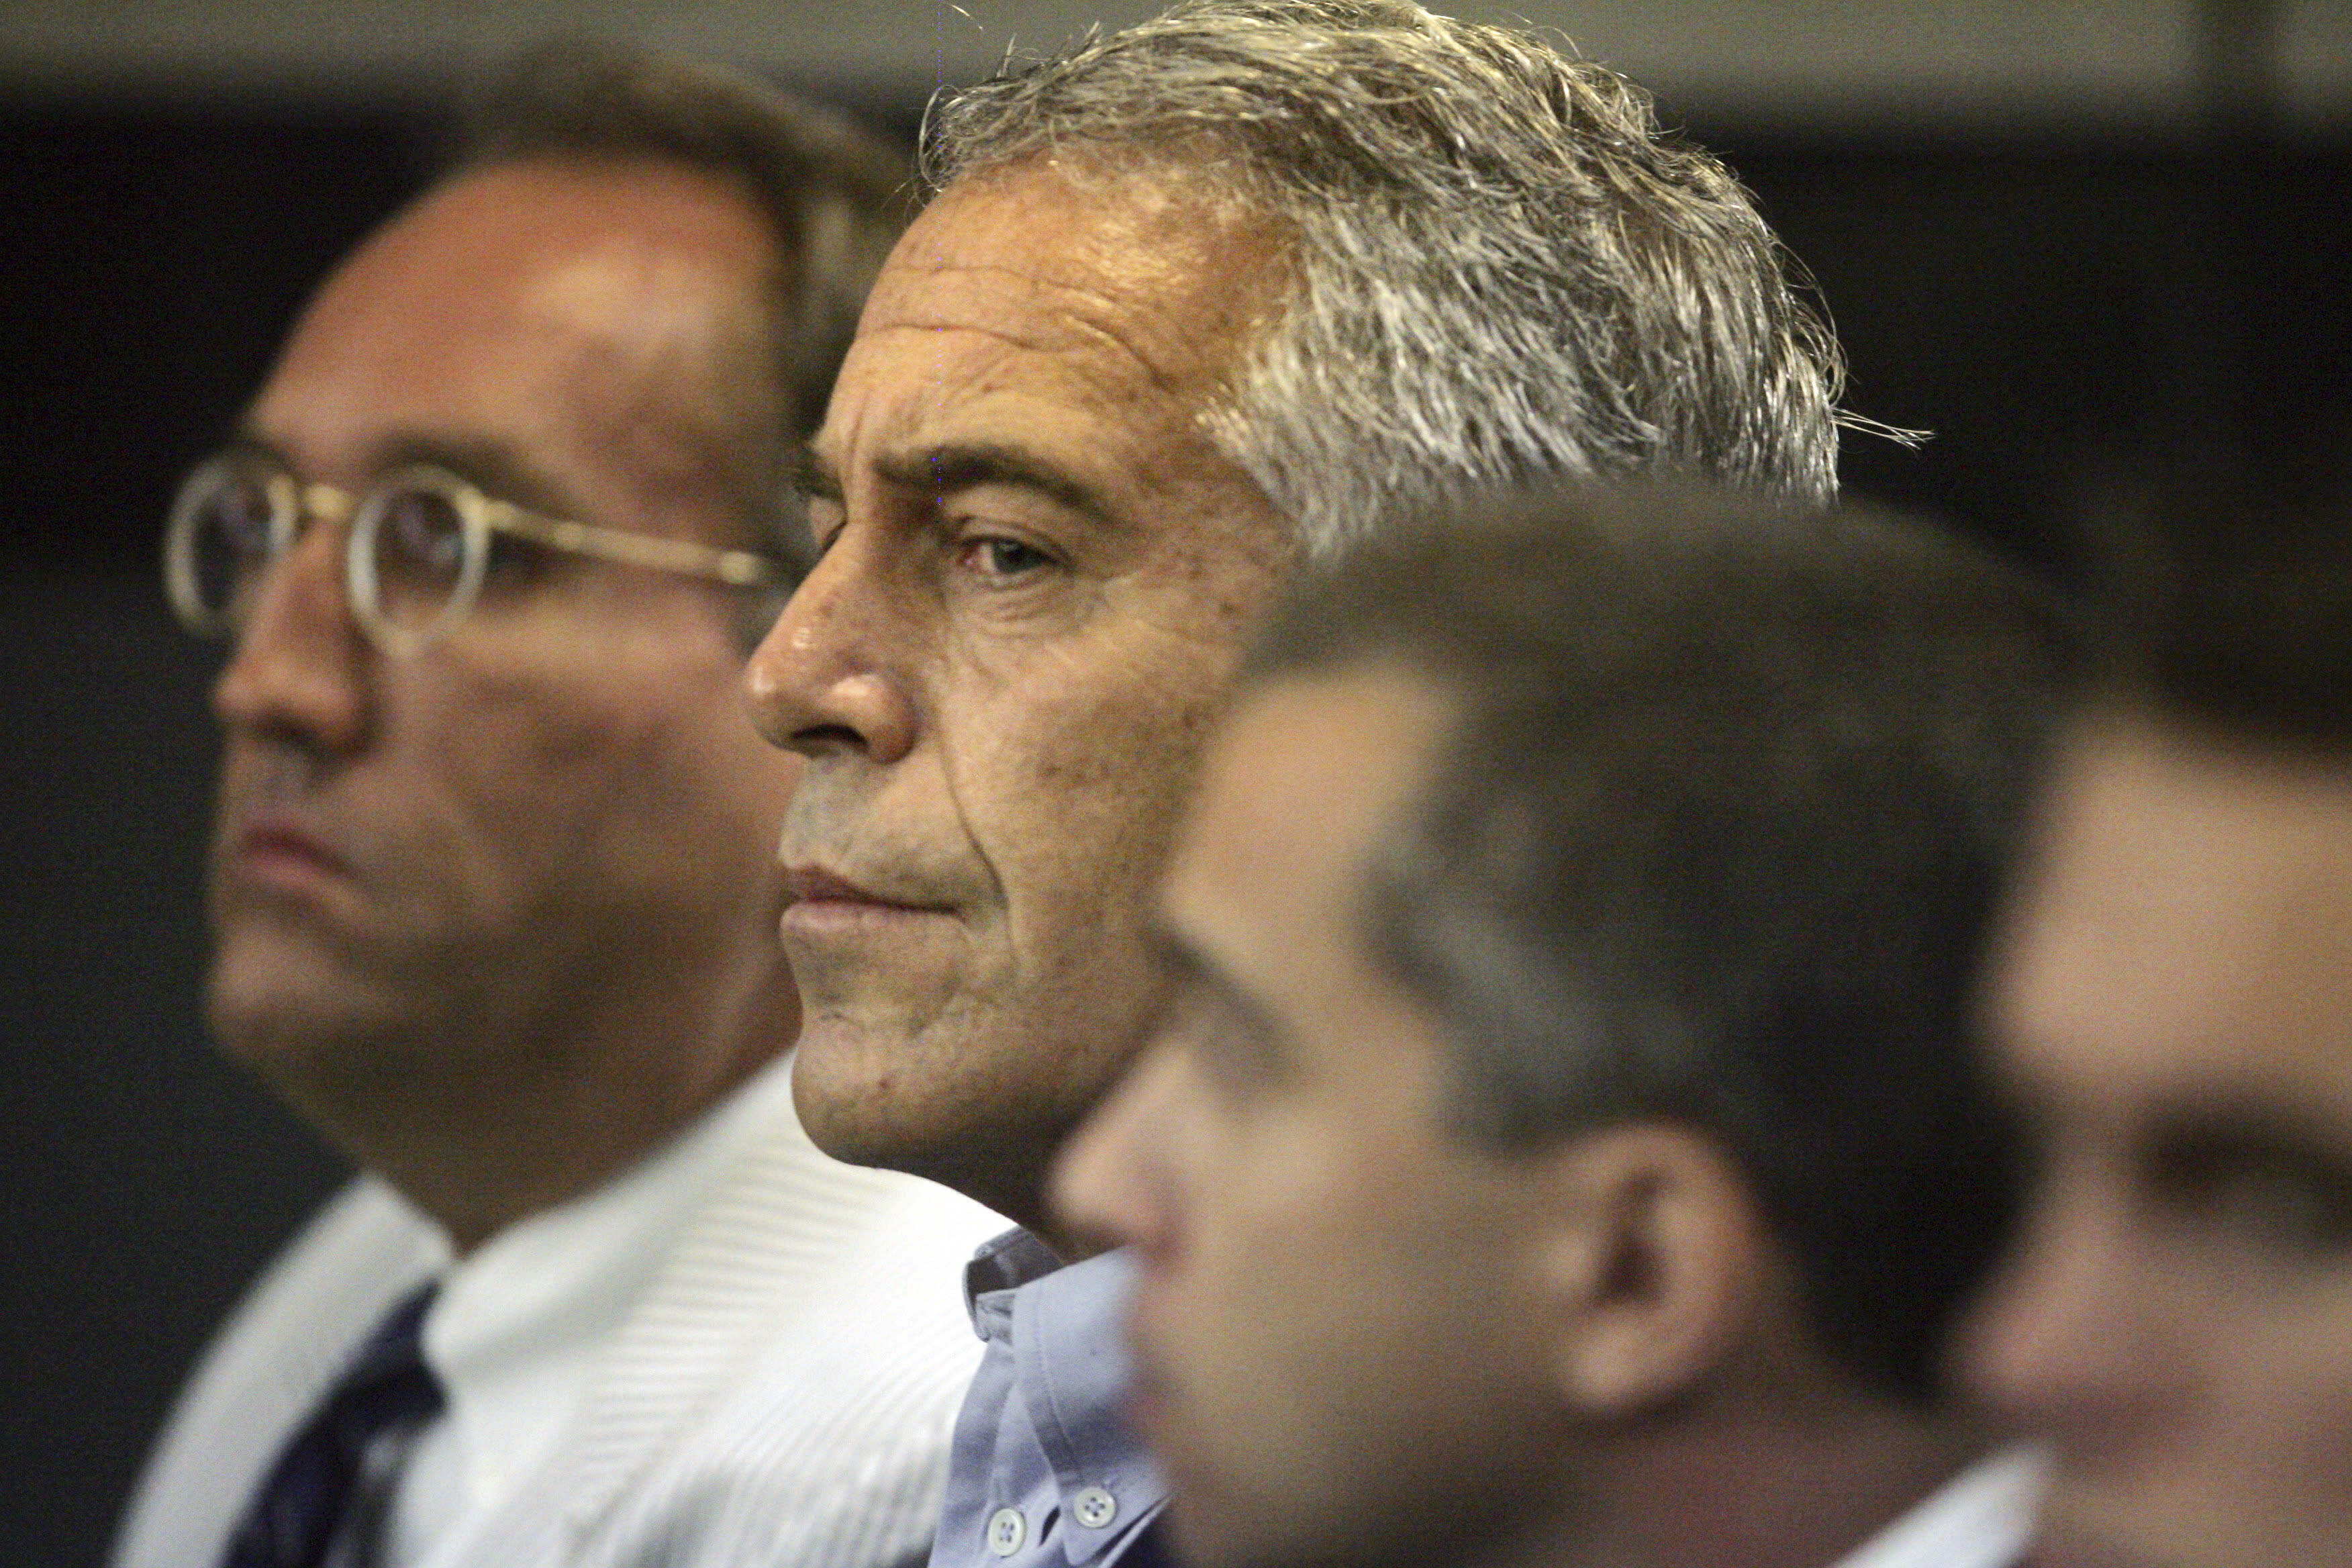 Deutsche Bank Ended Its Relationship With Jeffrey Epstein This Year